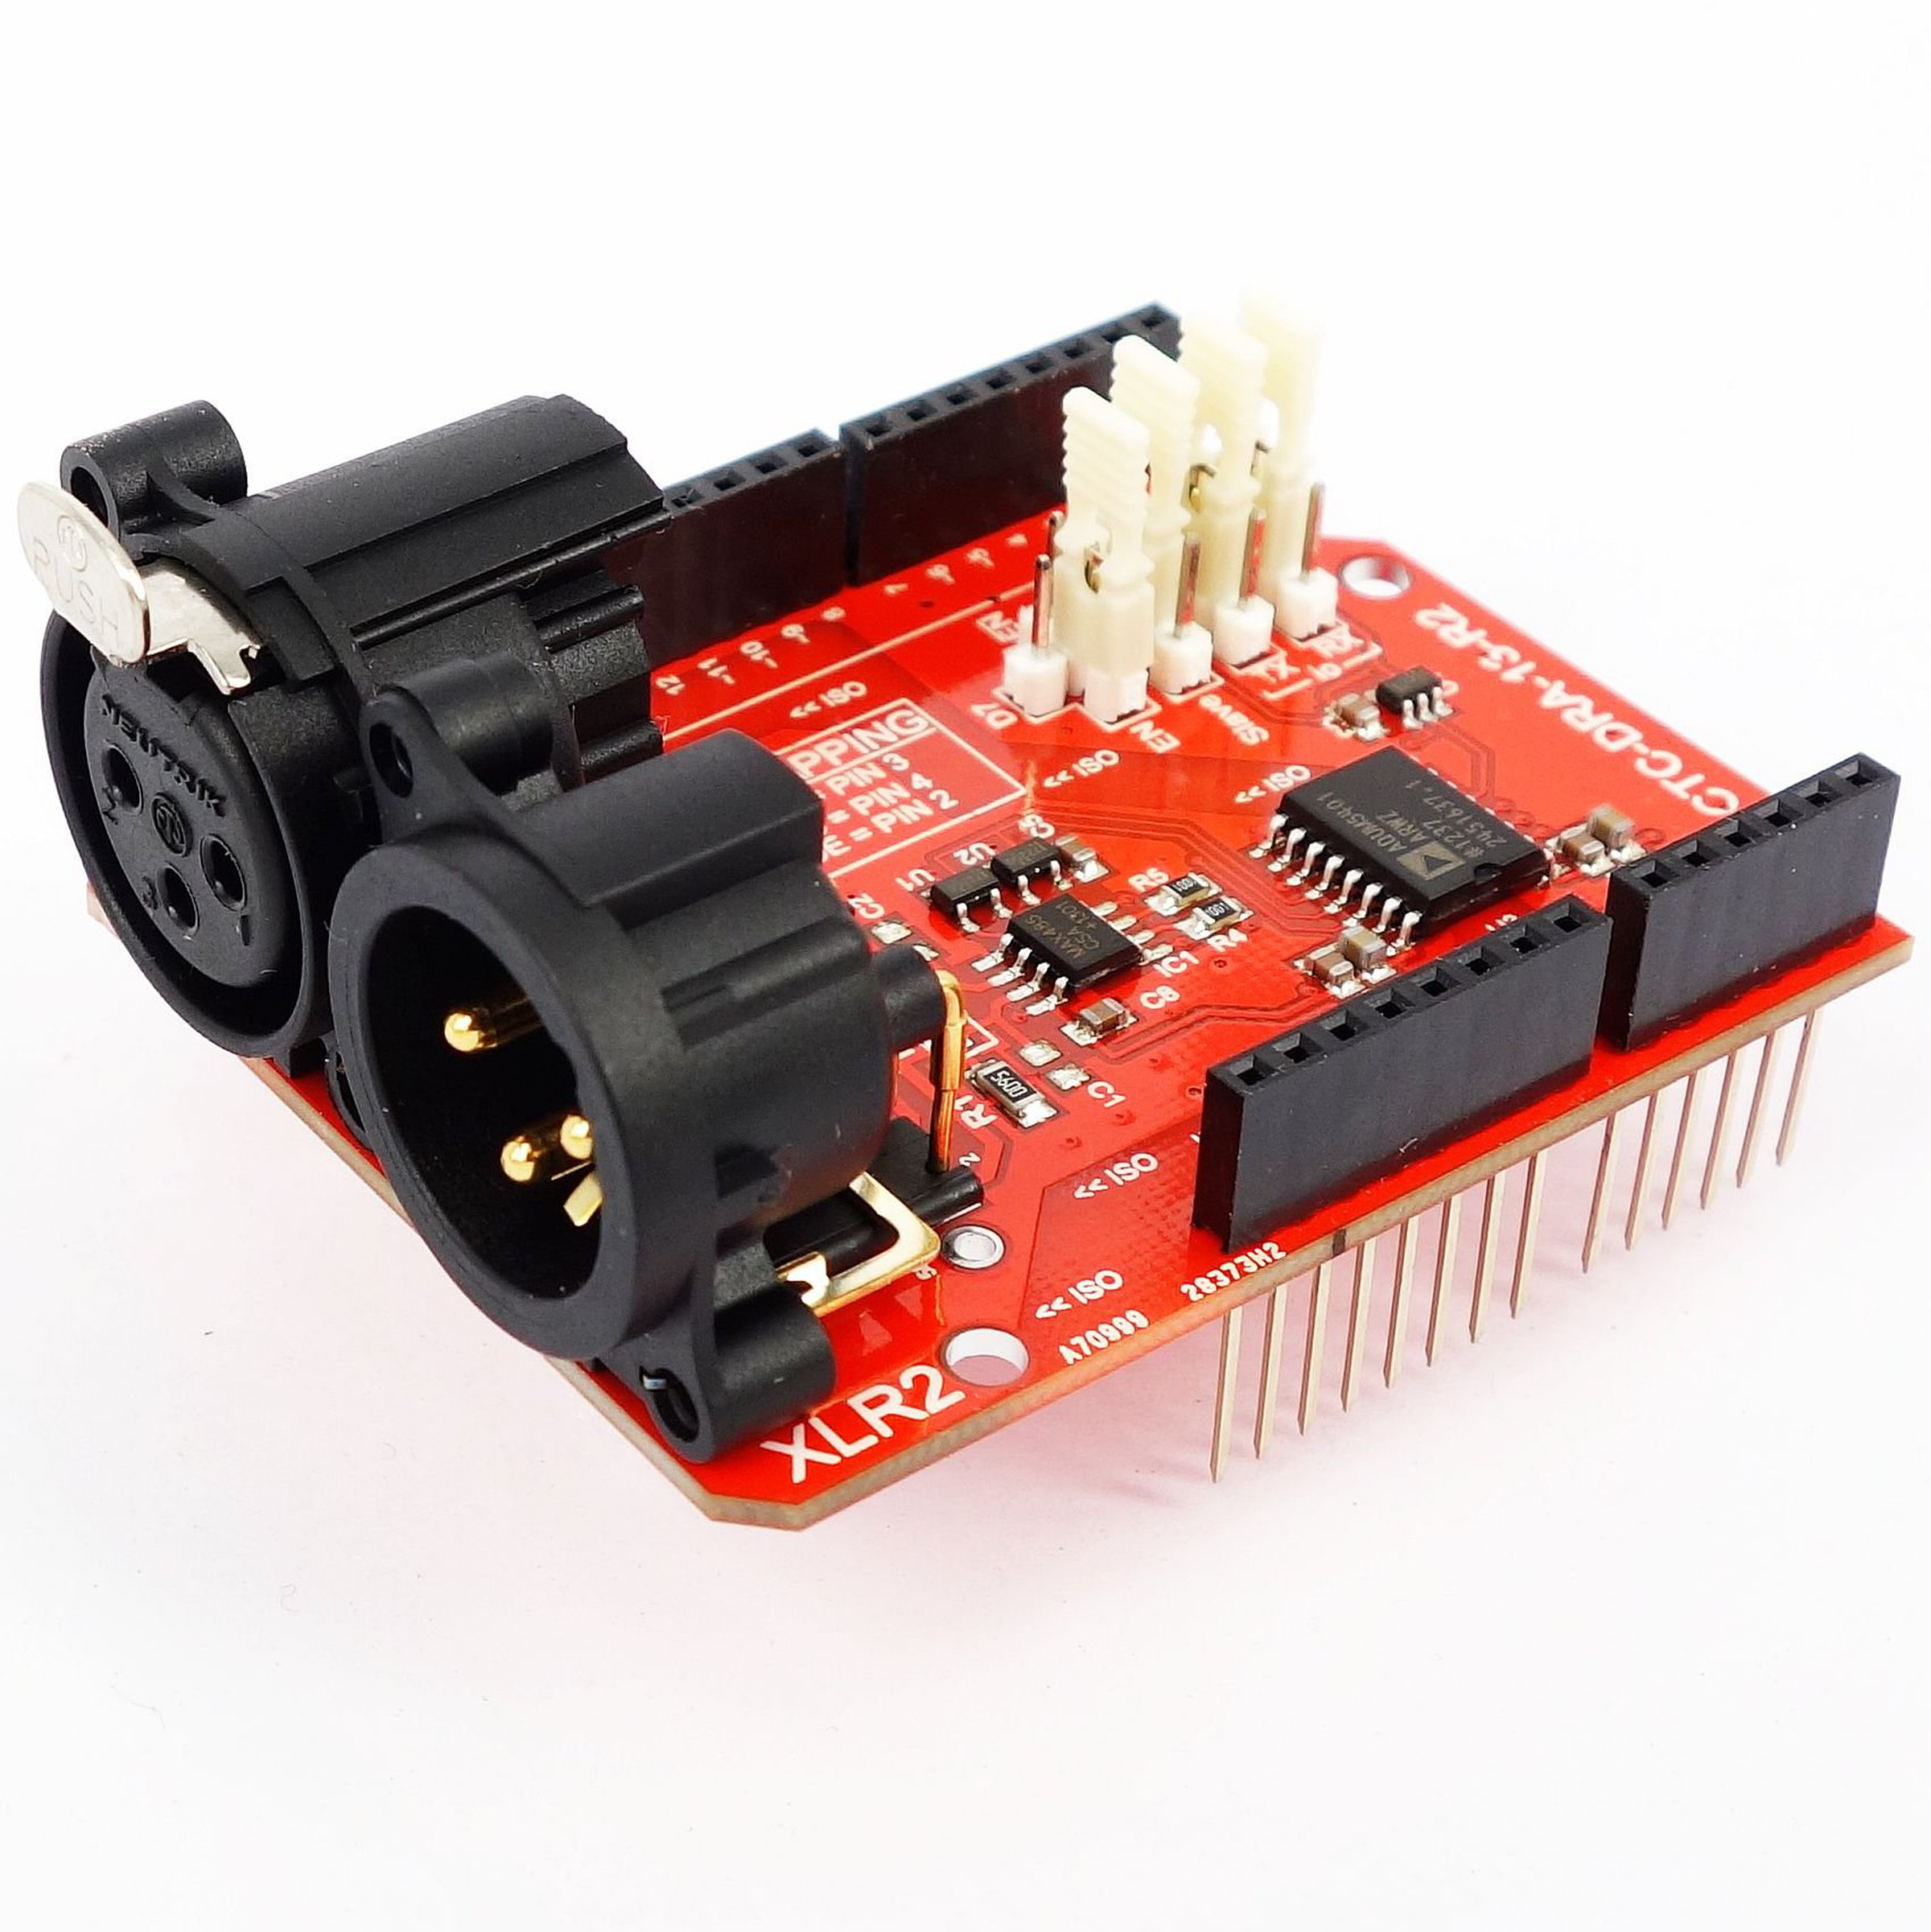 25kv Isolated Dmx 512 Shield For Arduino R2 From Conceptinetics Real Time Clock Schematic 1